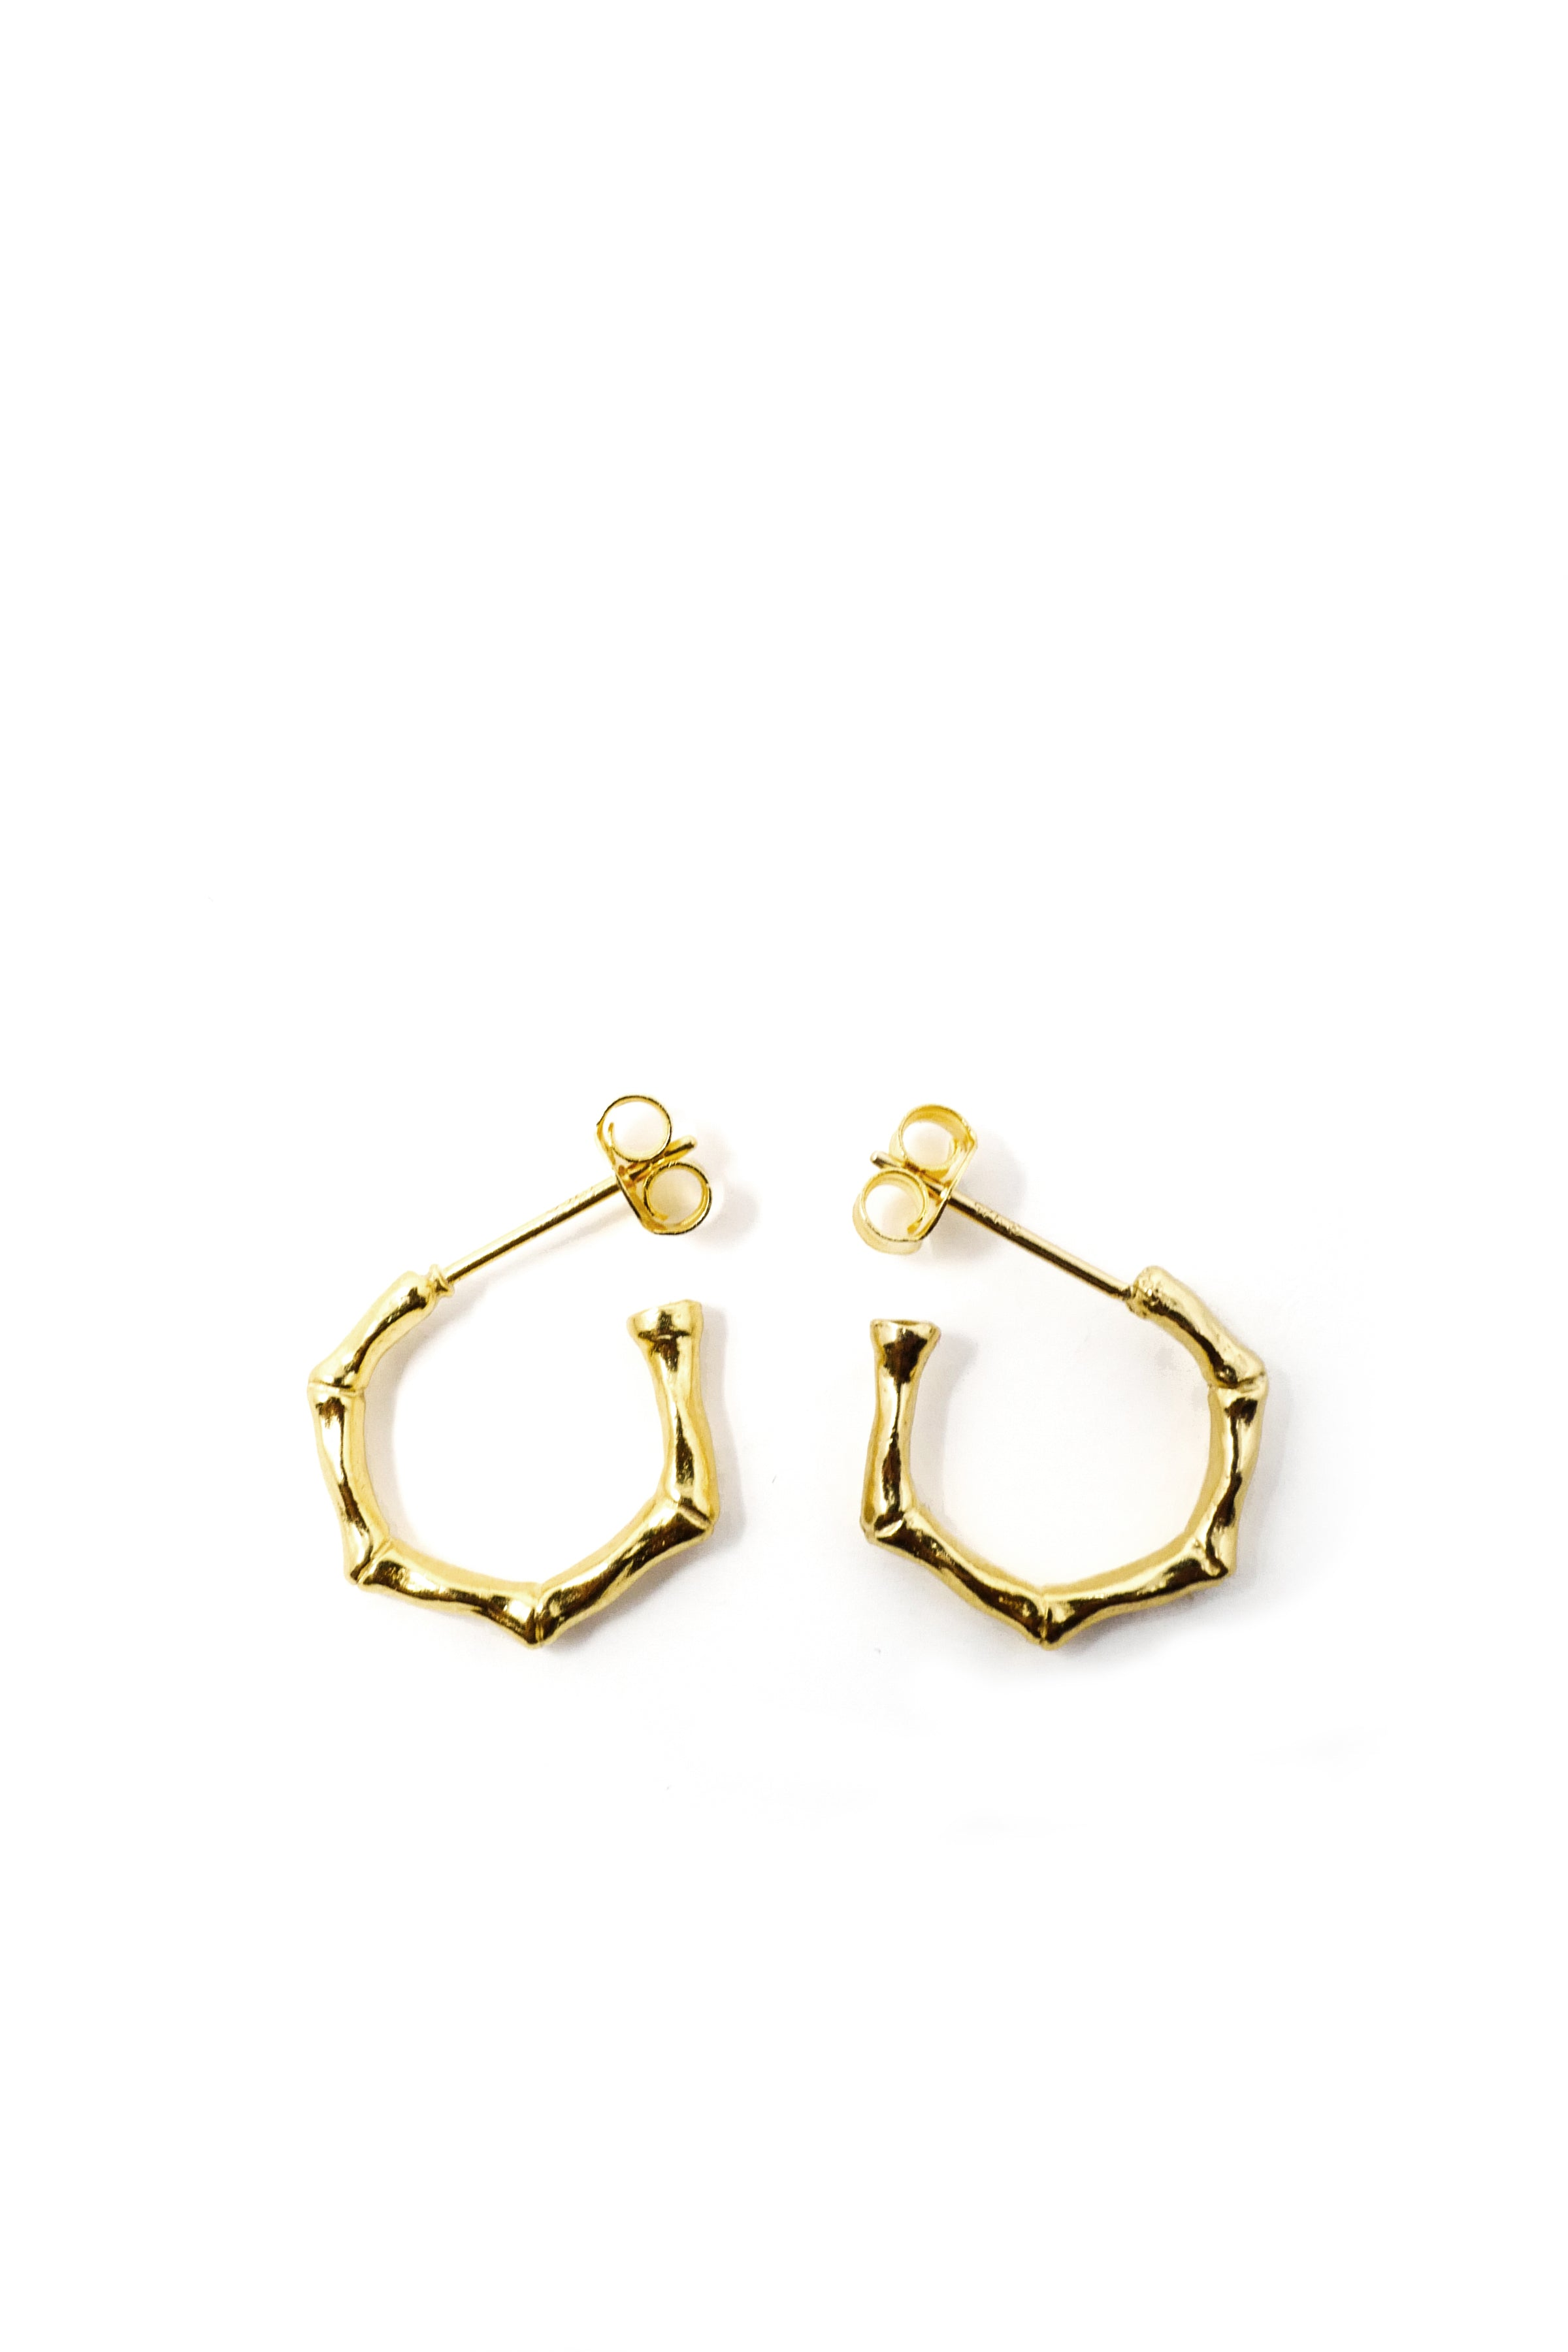 THE MINI BAMBOO Huggie Earrings